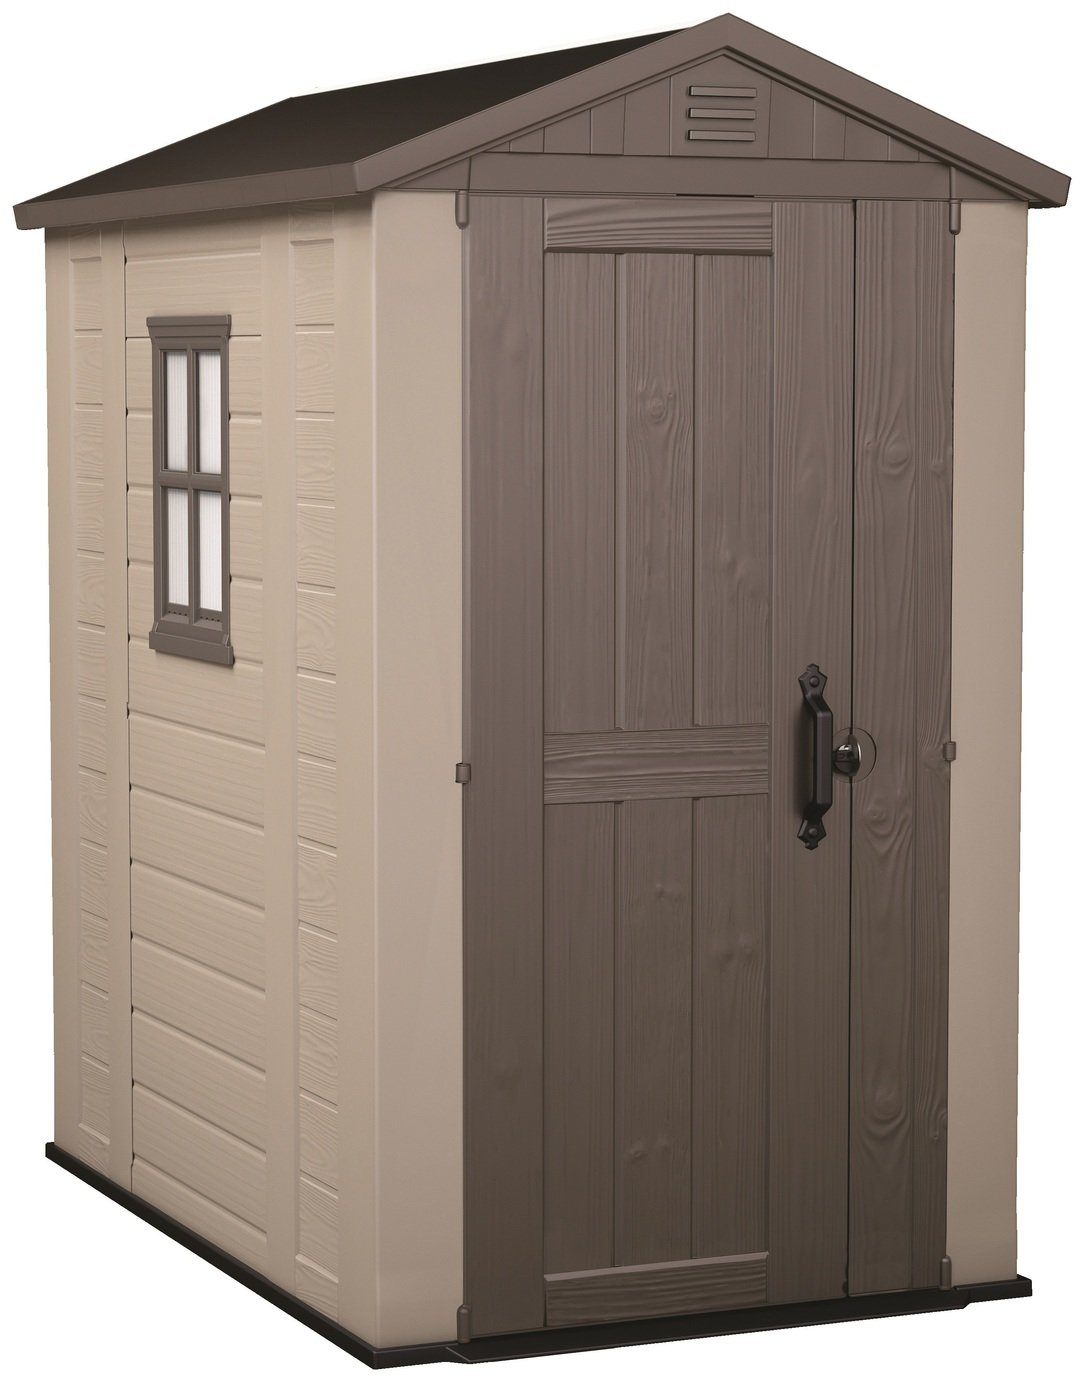 Keter Apex Plastic Garden Shed - 4 x 6ft from Keter